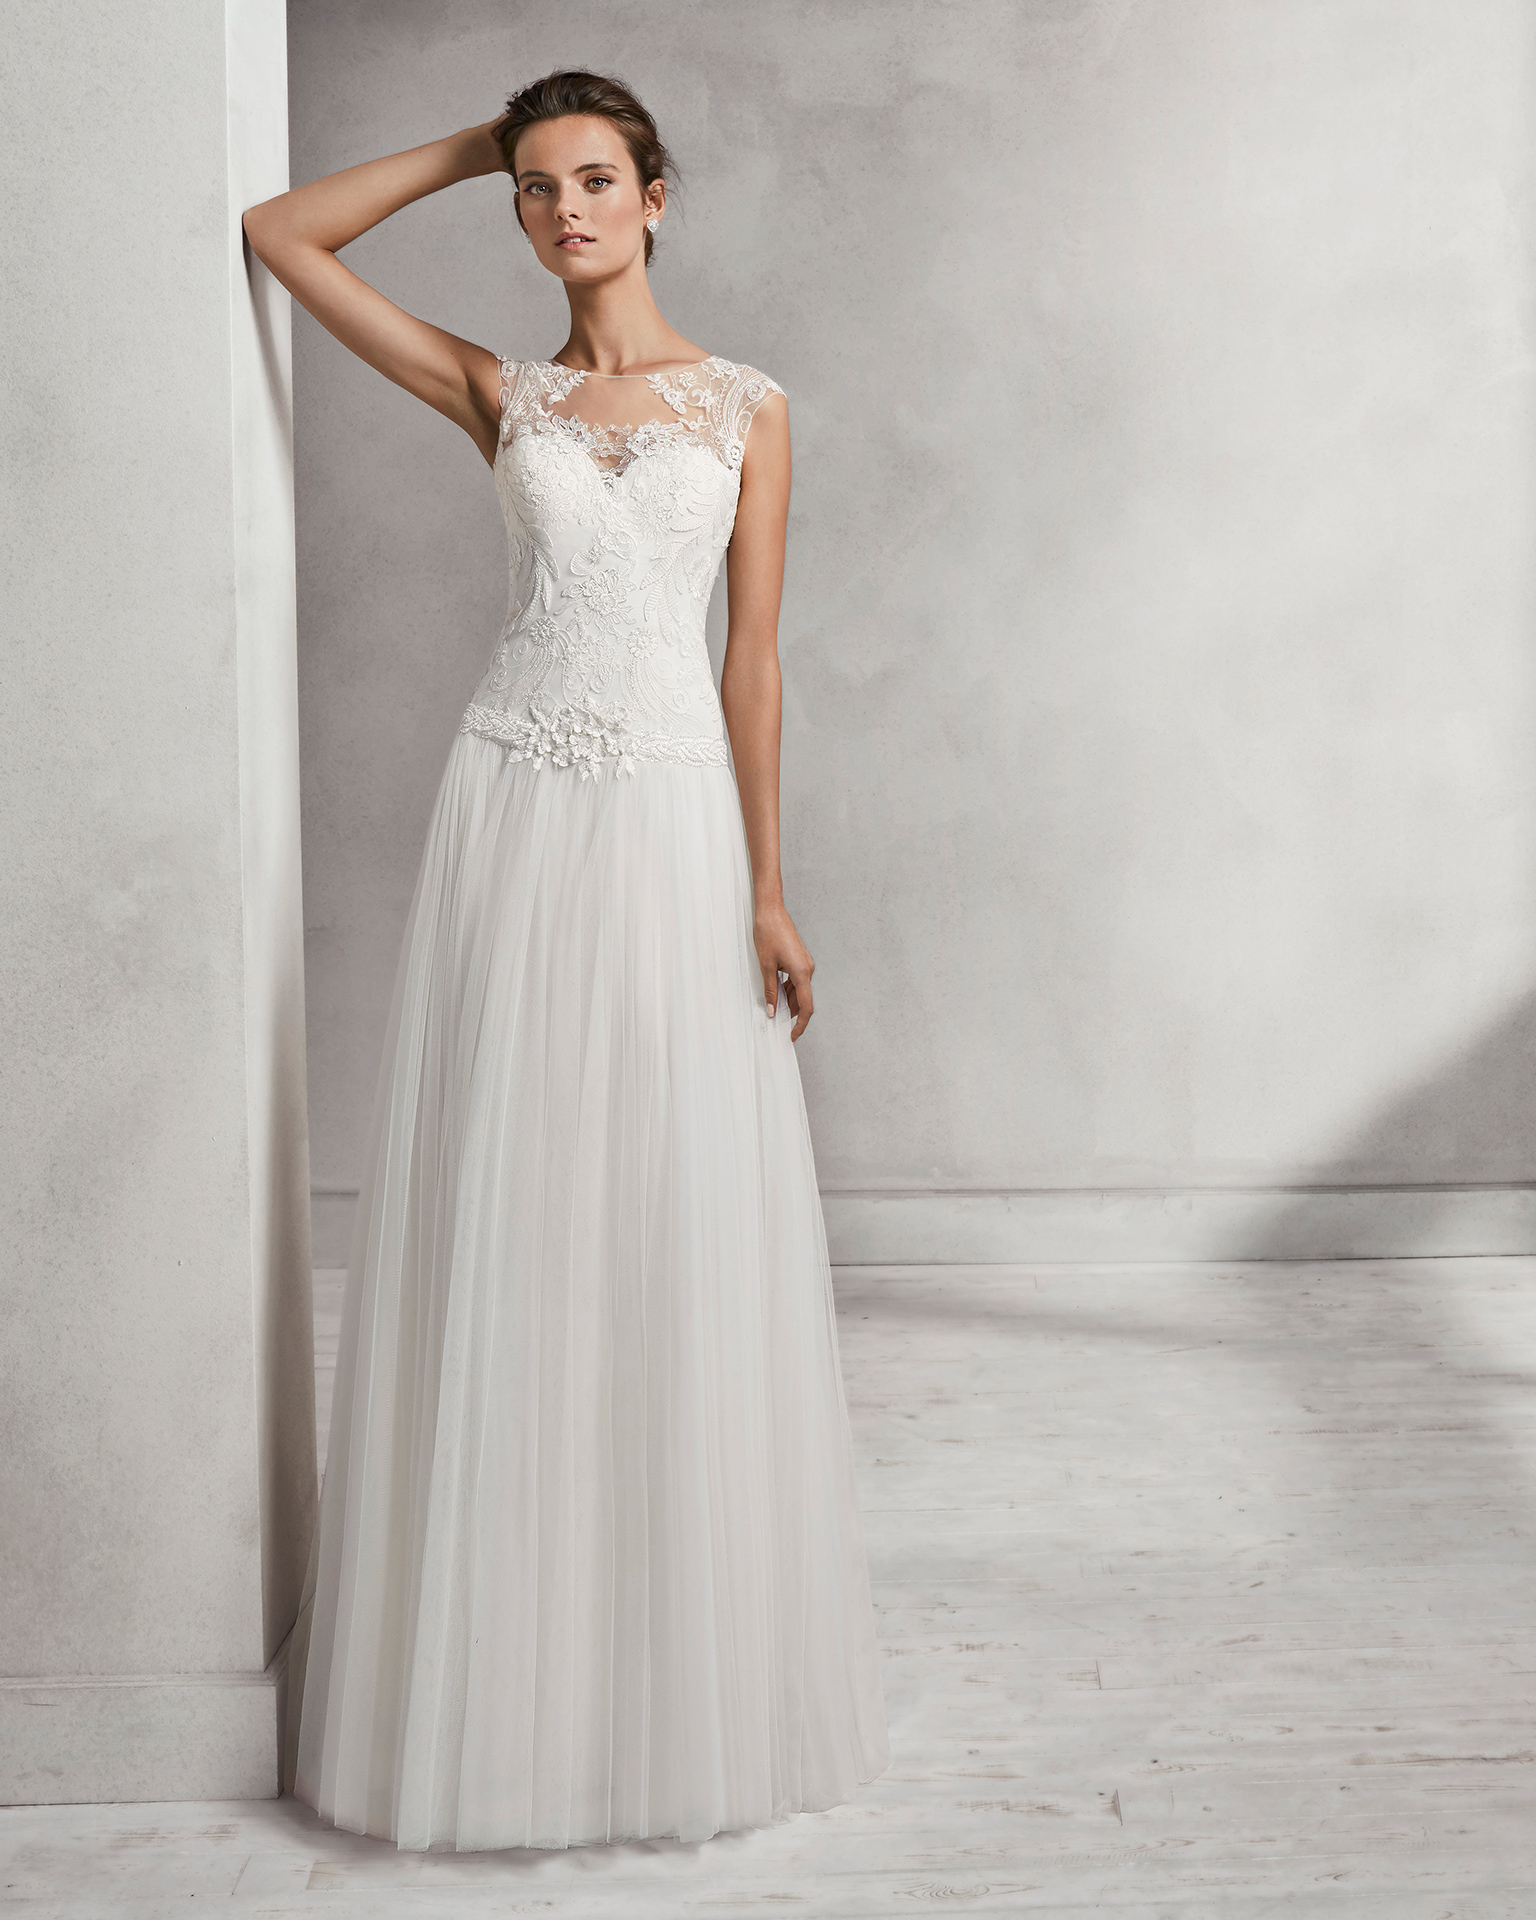 Beaded lace and tulle sheath wedding dress with illusion neckline.